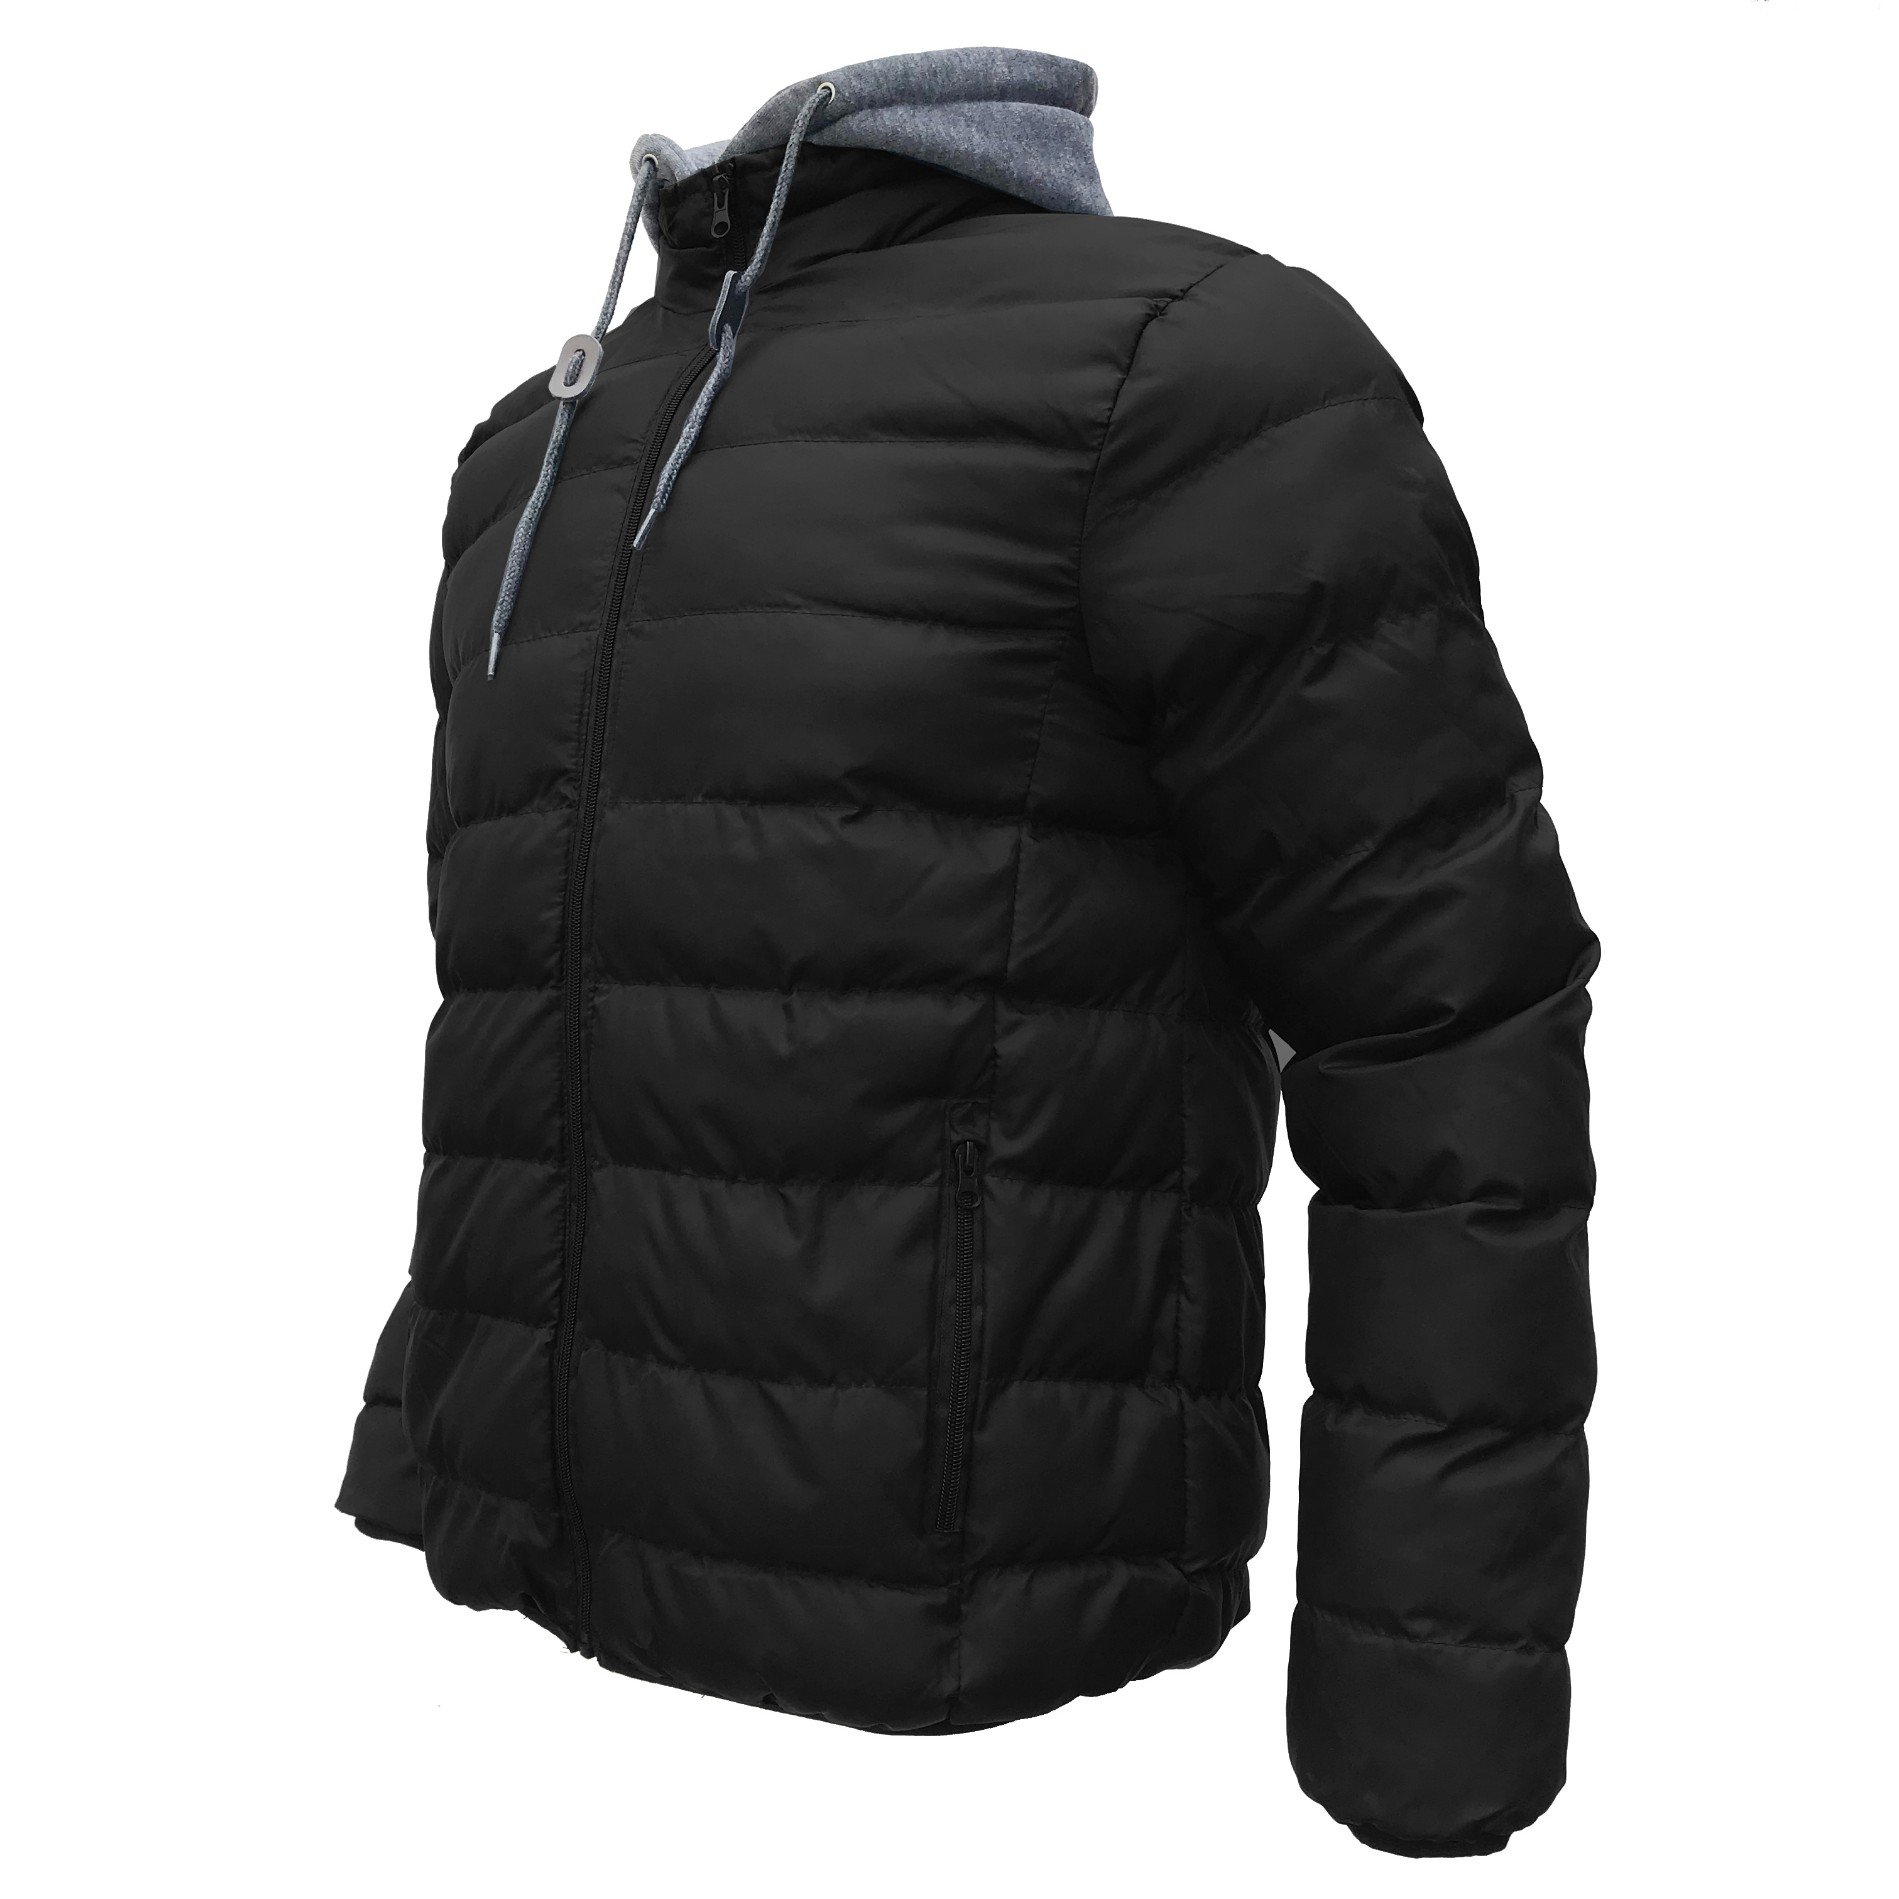 Men's High Quality Winter Coat Warm Padded Winter Jacket With Hood Manufacturers, Men's High Quality Winter Coat Warm Padded Winter Jacket With Hood Factory, Supply Men's High Quality Winter Coat Warm Padded Winter Jacket With Hood